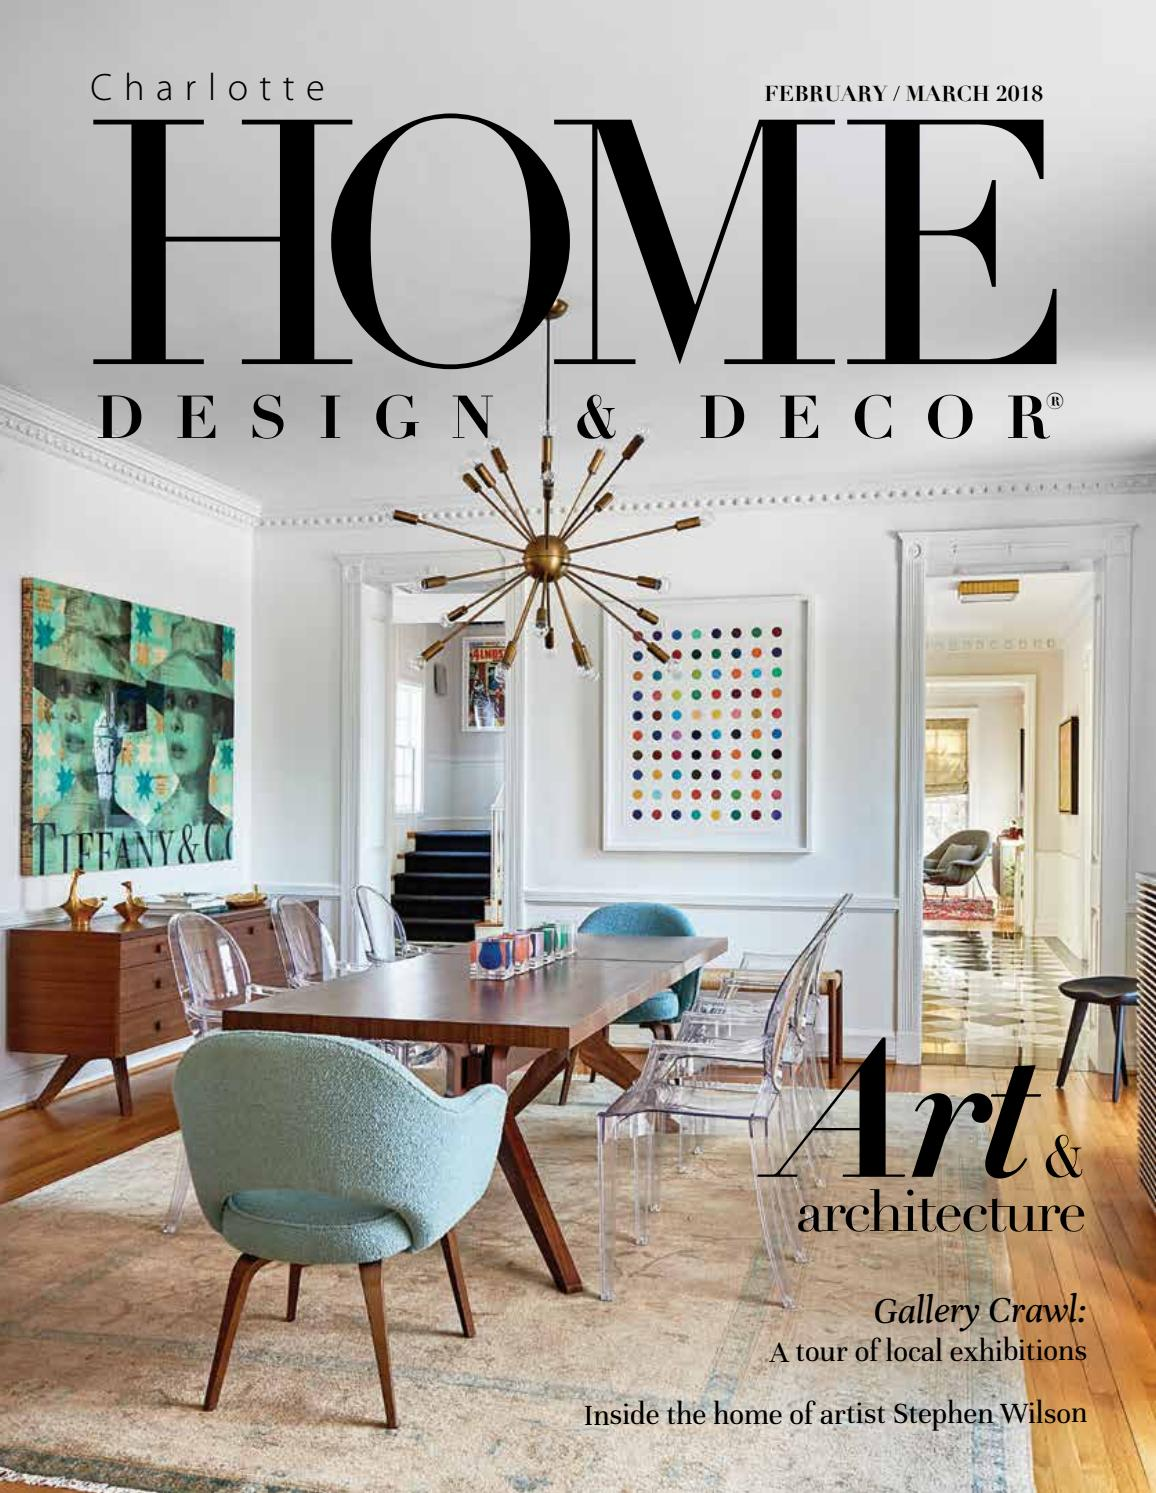 Wallpaper Magazine Kitchen Design February March 2018 By Home Design And Decor Magazine Issuu